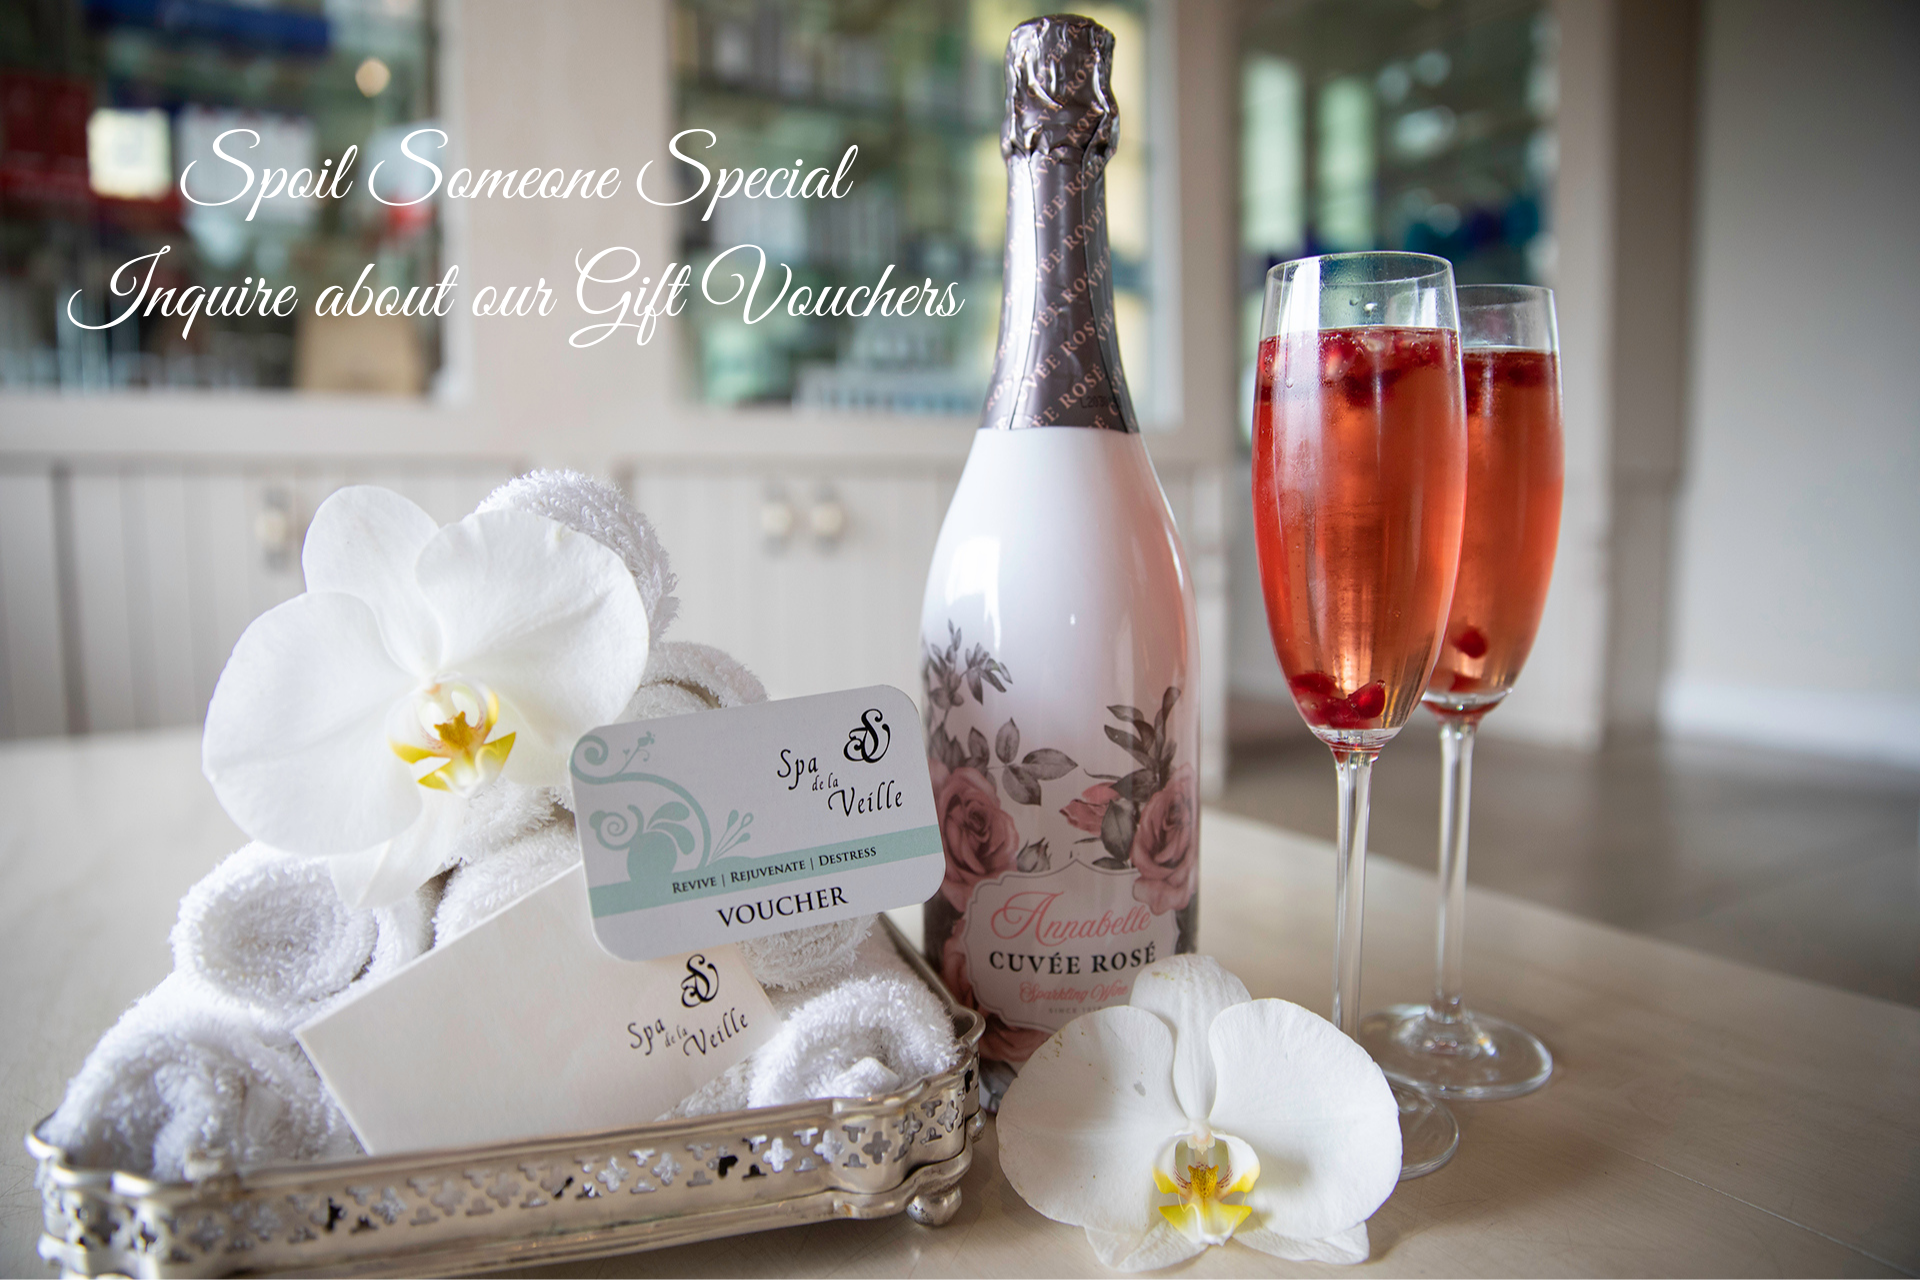 Spoil Someone Special Inquire about our Gift Vouchers